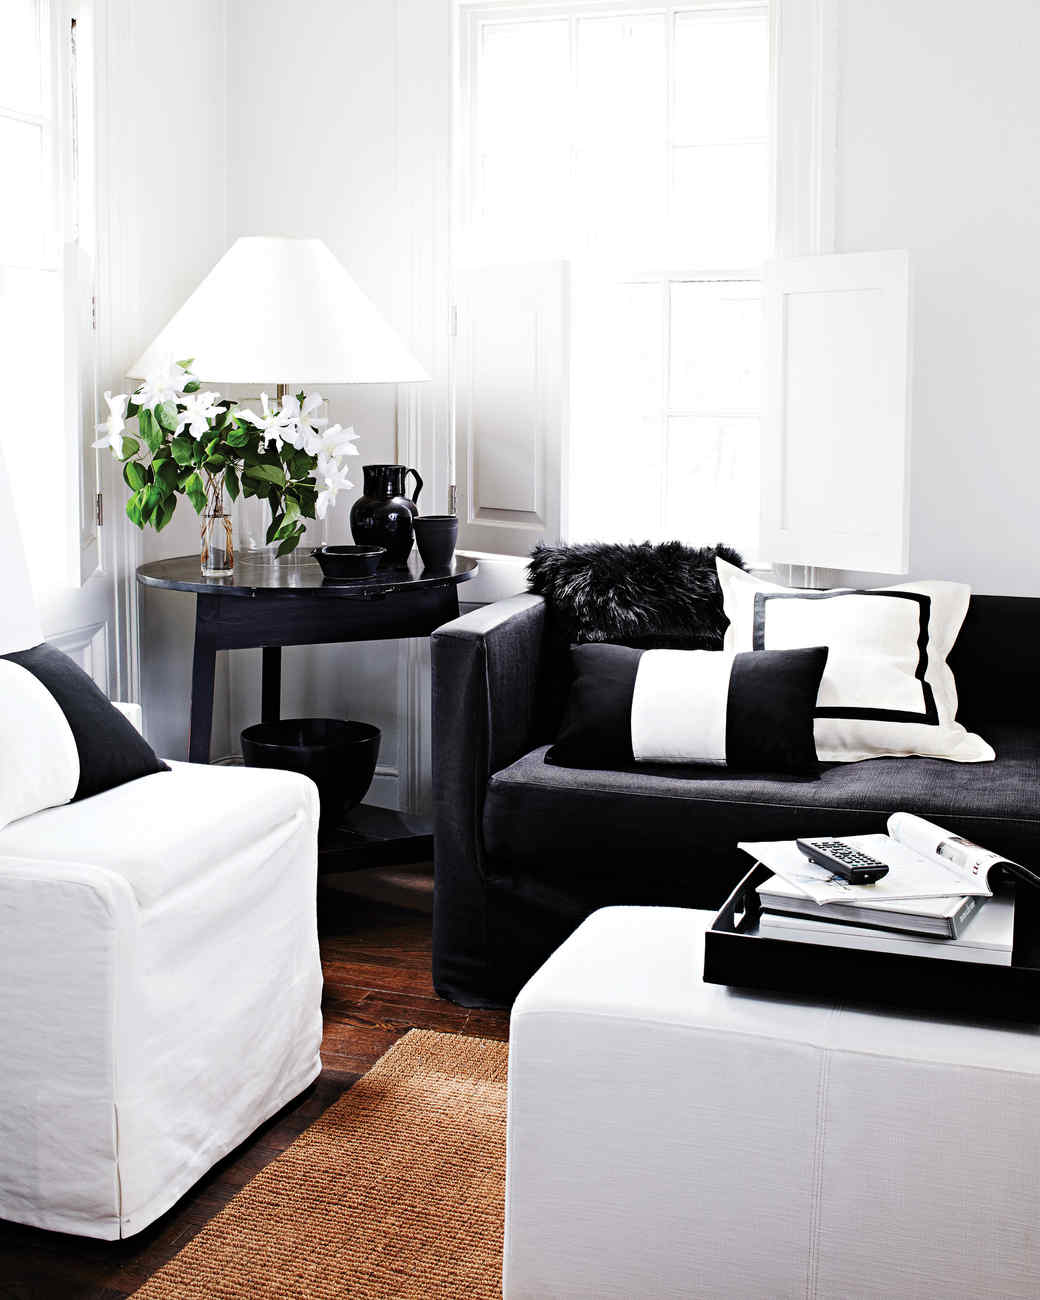 The Art of Decorating with Black and White | Martha Stewart